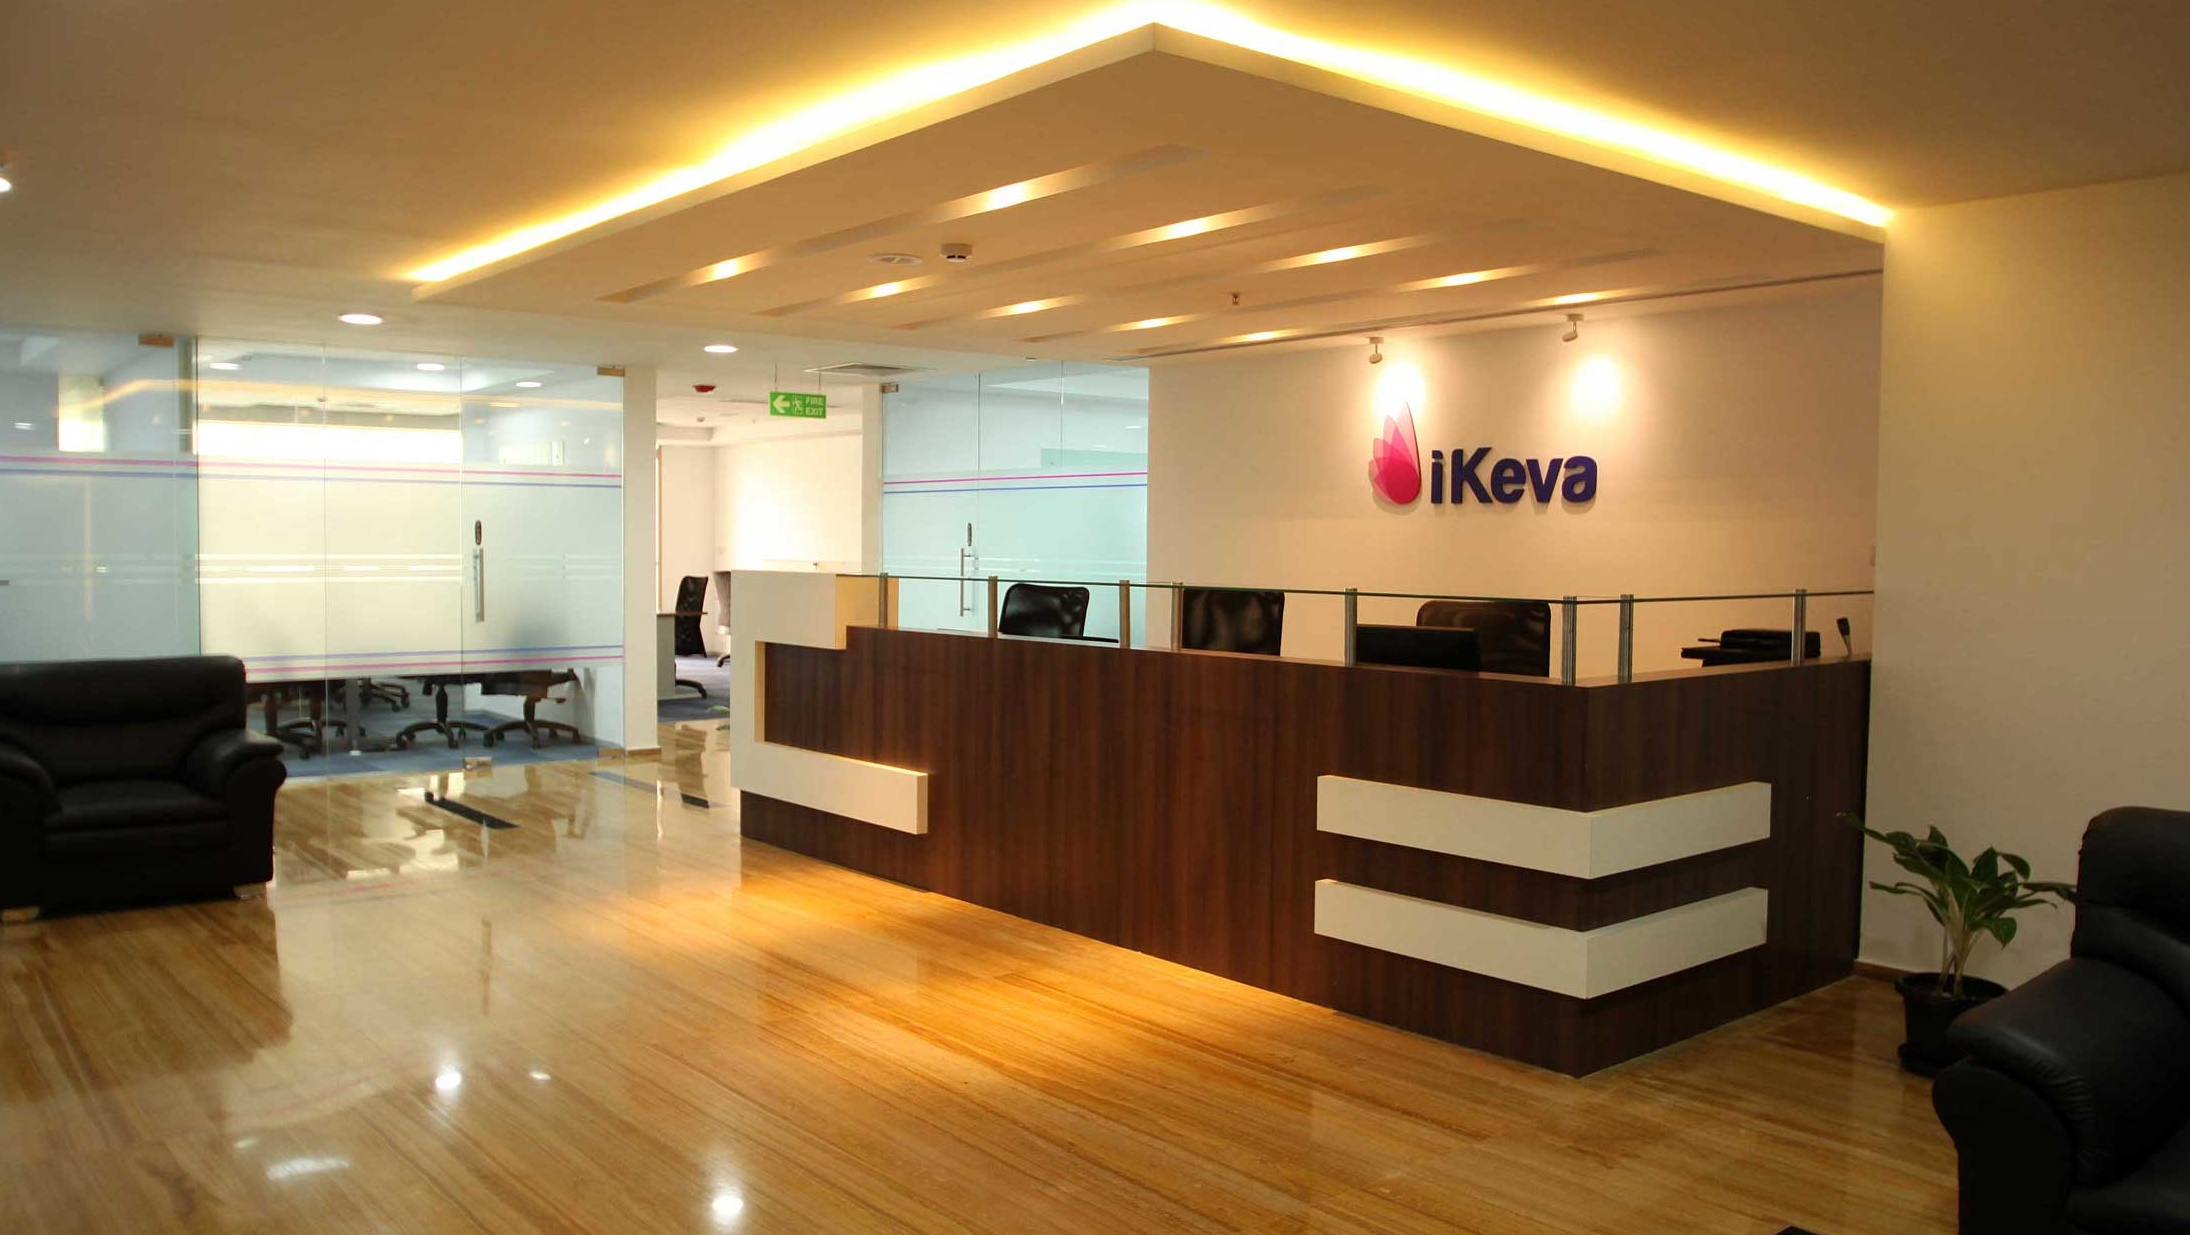 Ikeva's liberared coworking space offers a more flexible and collaborative environment for entrepreneurs